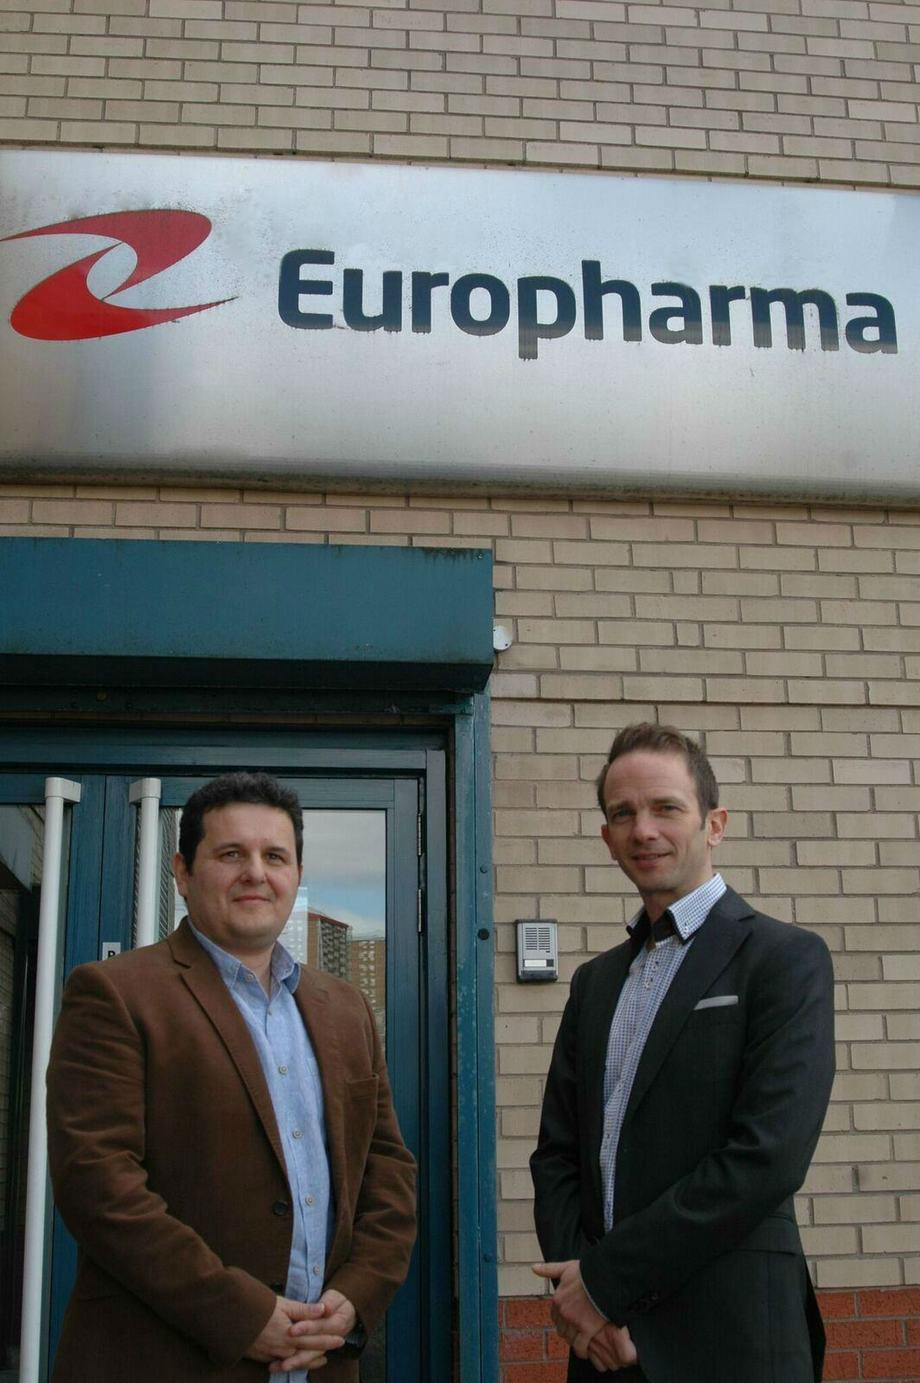 Nikos Steiropoulos MD EuroPharma and Dafyyd Morris MSD